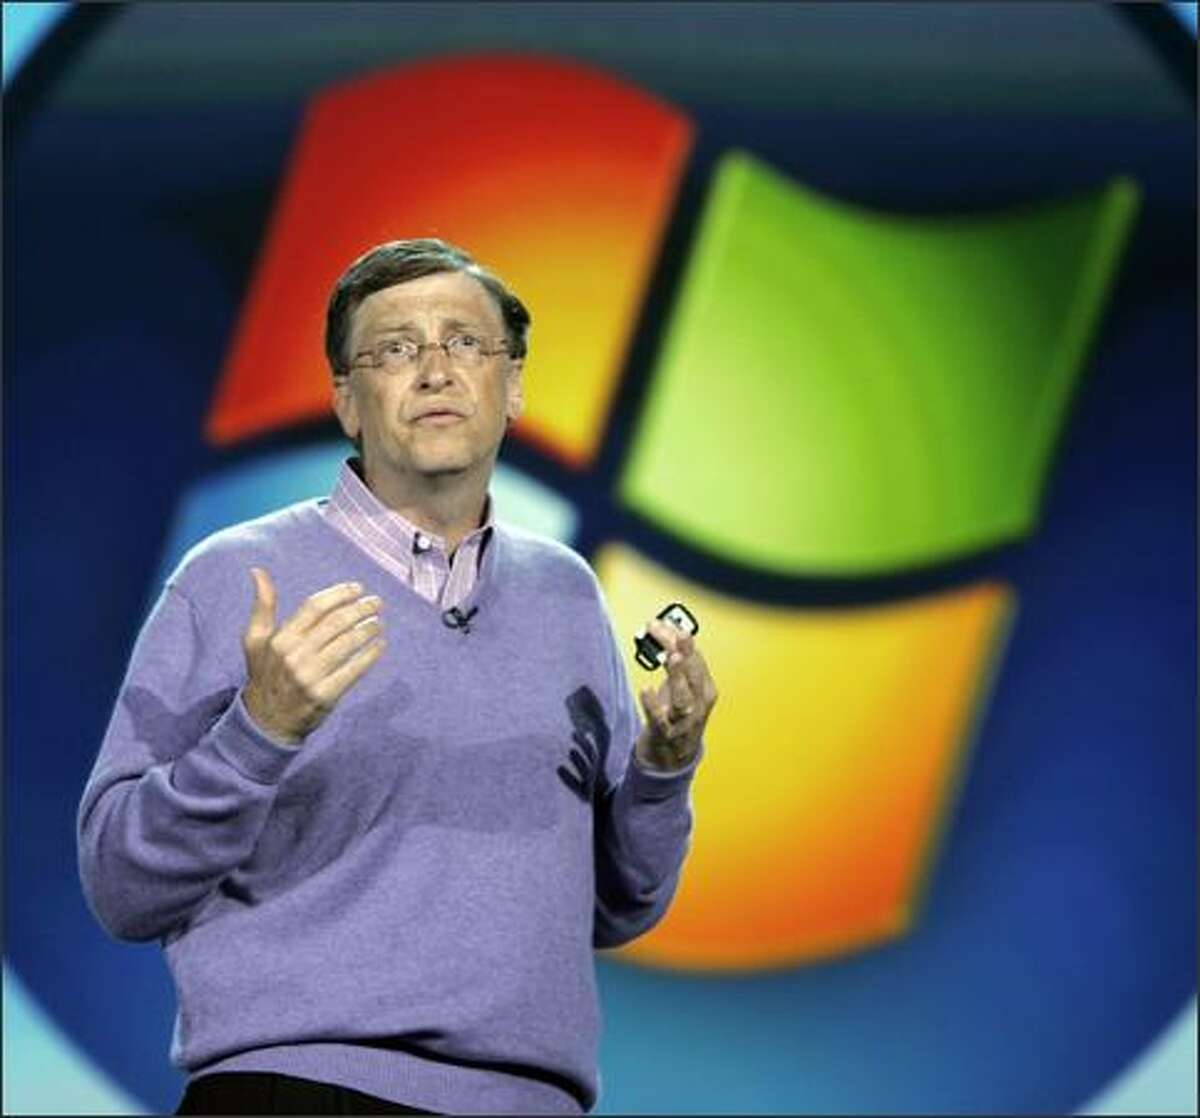 Microsoft chairman Bill Gates speaks at keynote address at the Consumer Electronics Show in Las Vegas, Sunday, Jan. 6, 2008 . (AP Photo/Paul Sakuma)